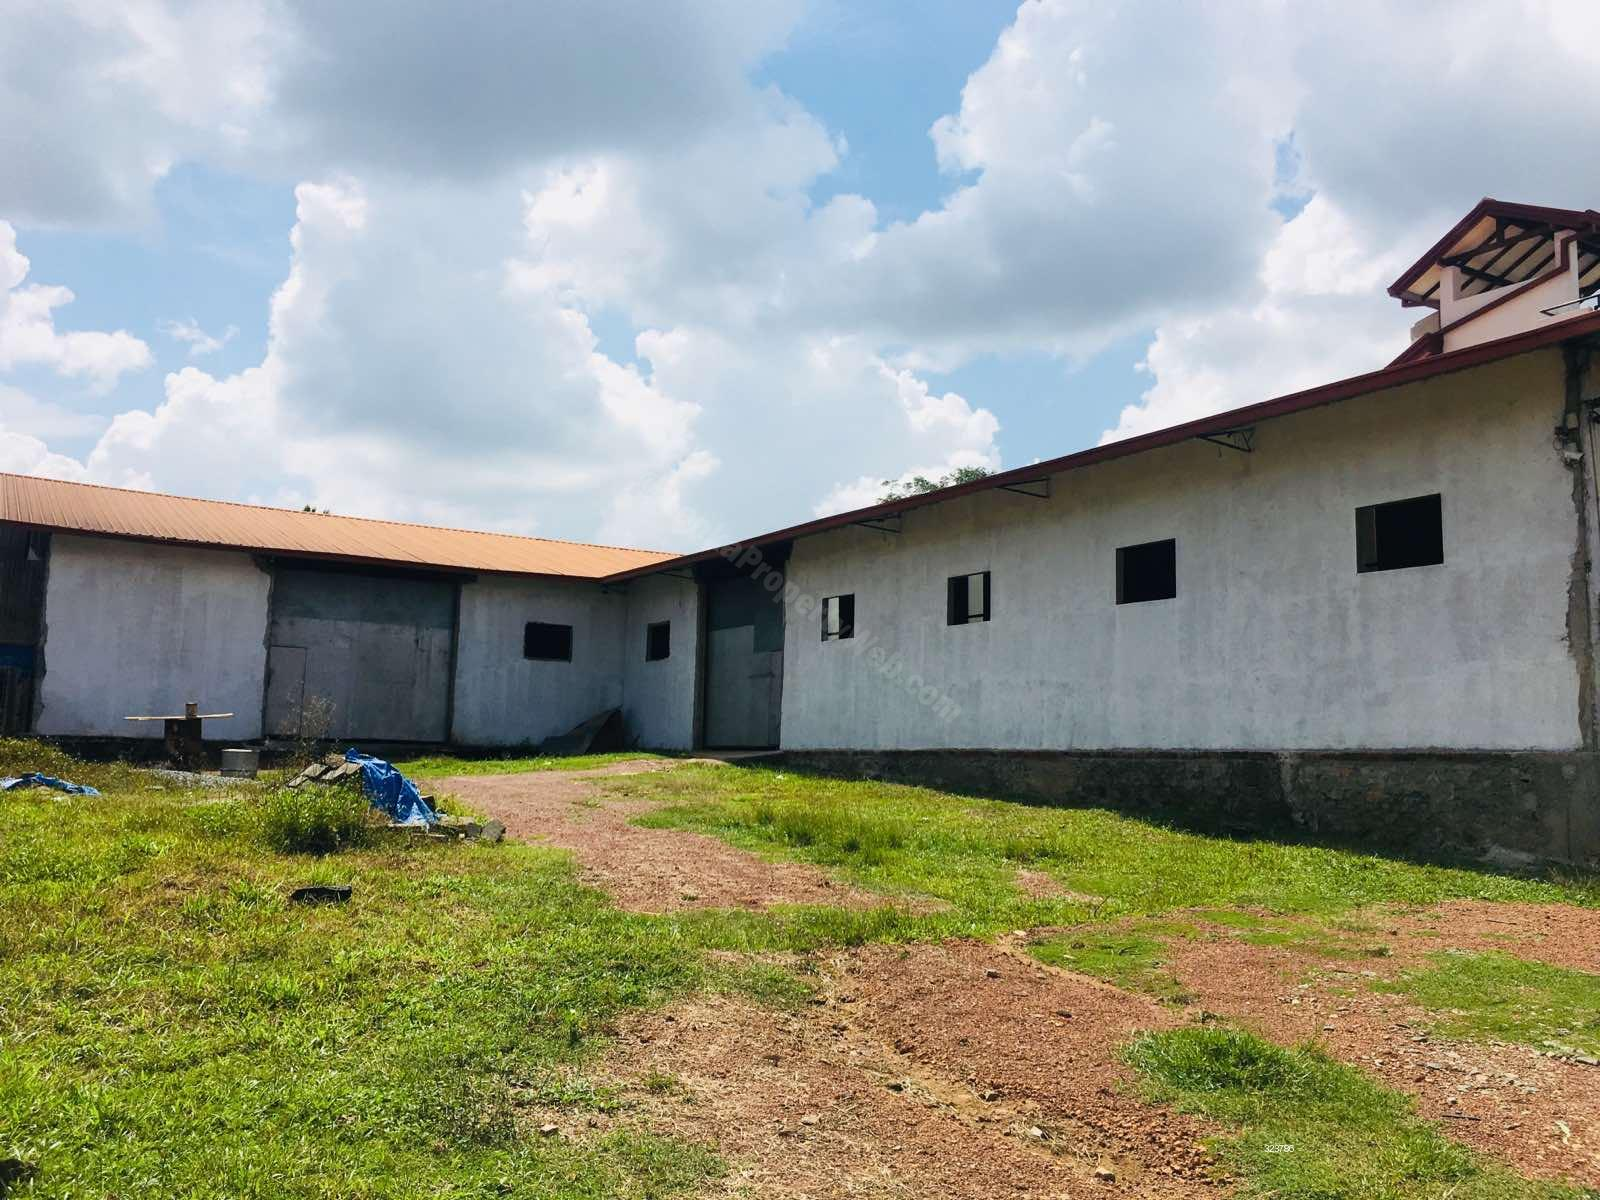 Comm - Shop for sale in Kandana - Factory Building with 50 Perches Land For Sale in Ganemulla, Kadana